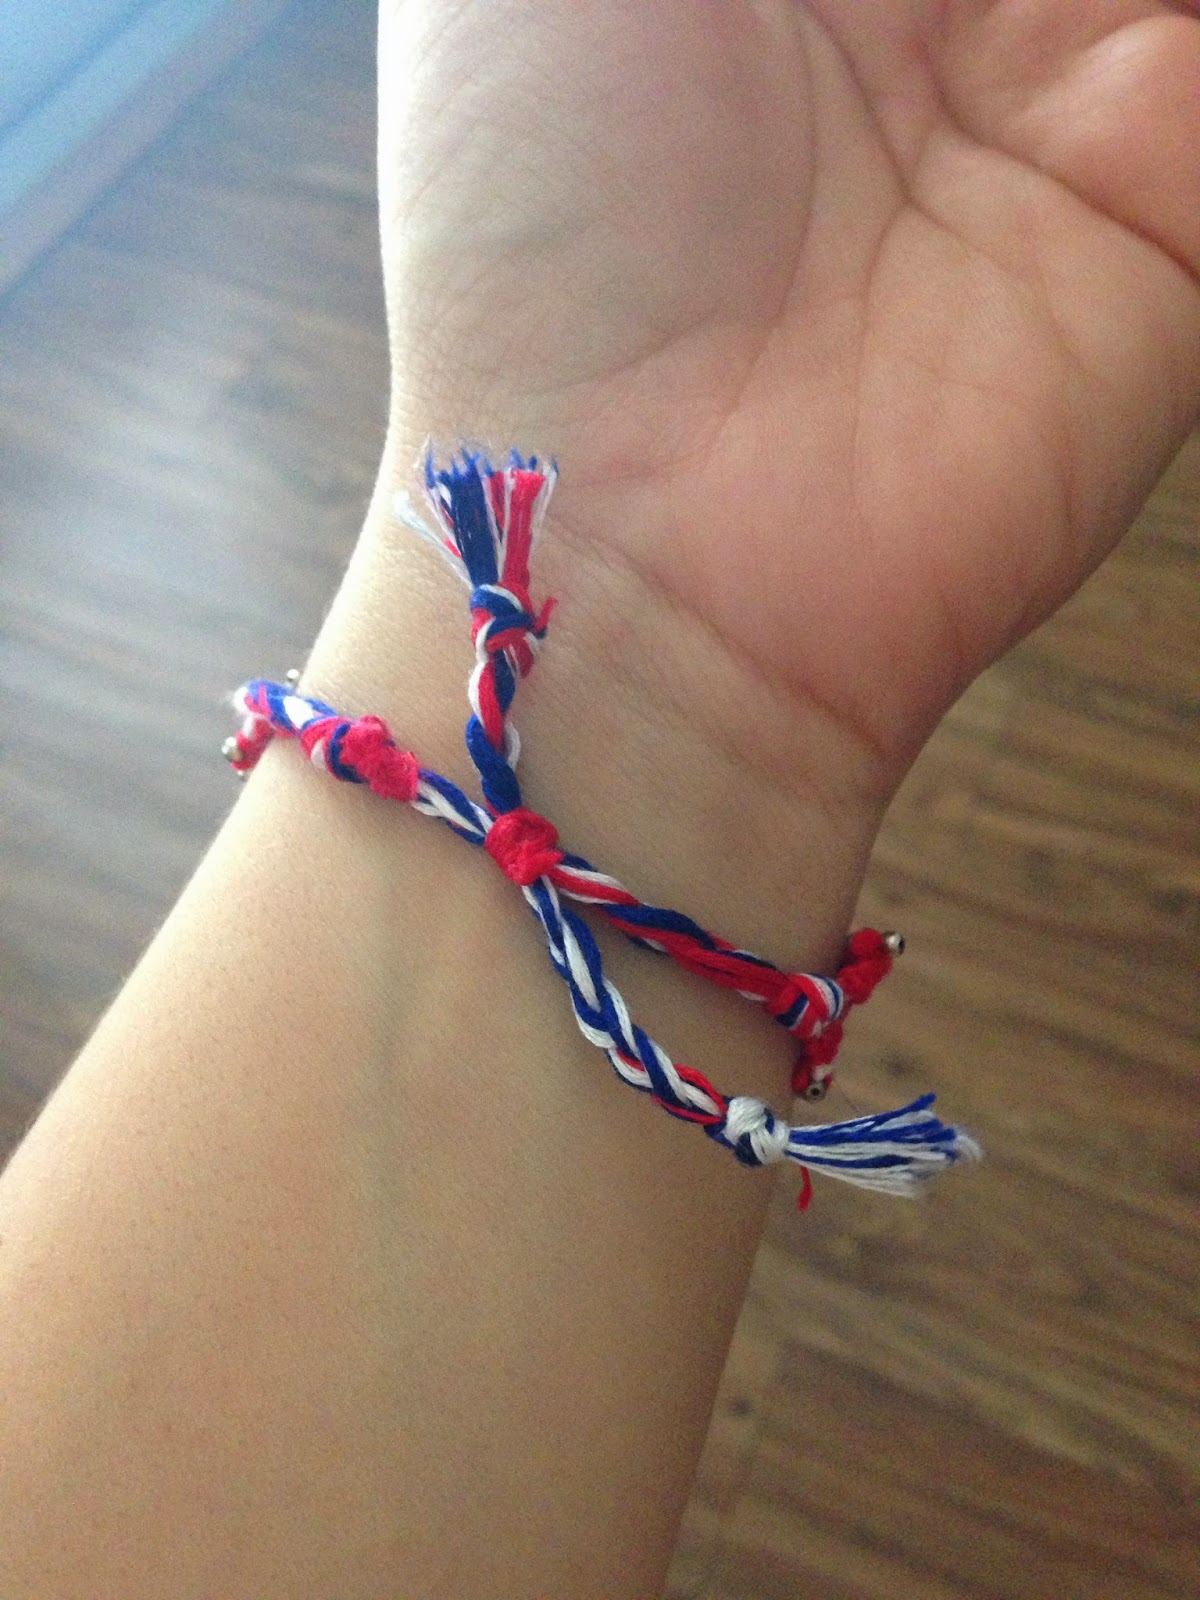 How to tie a friendship bracelet